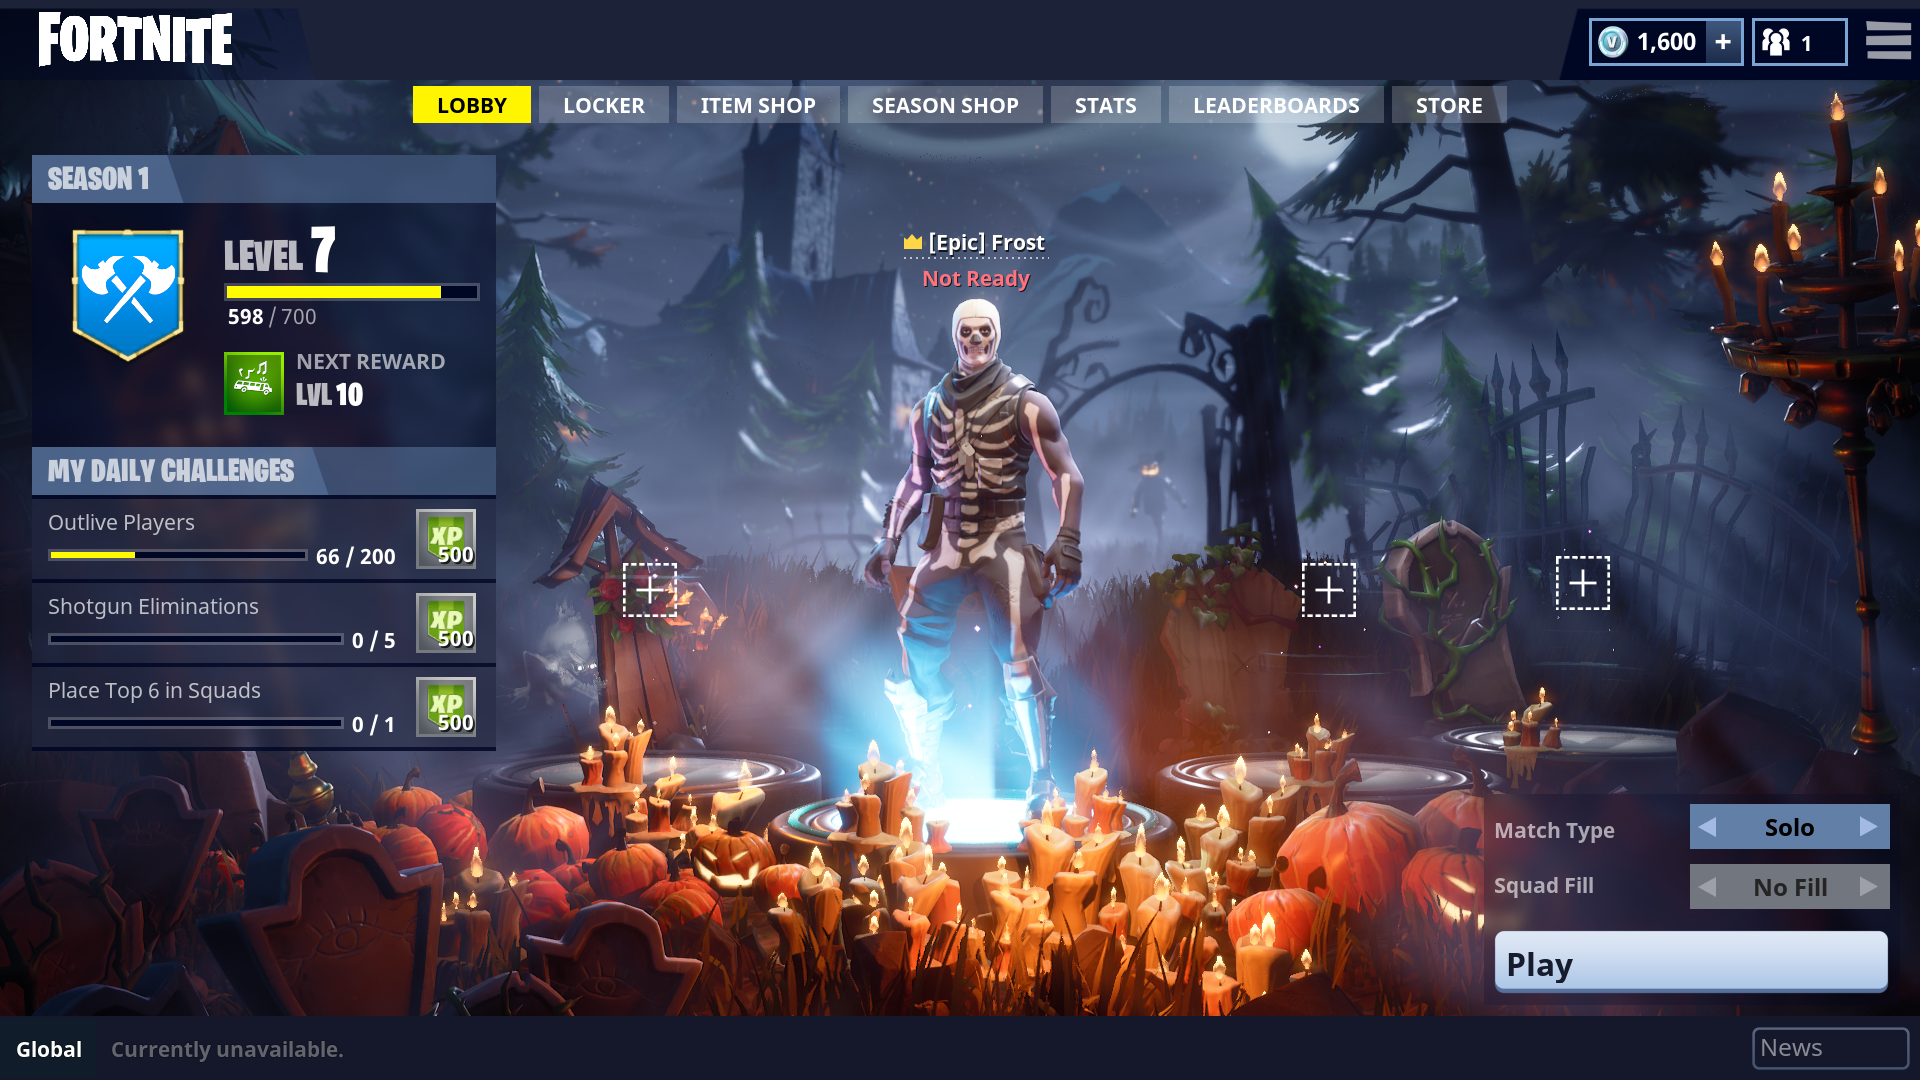 Fortnite Halloween event and major Battle Royale upgrade are